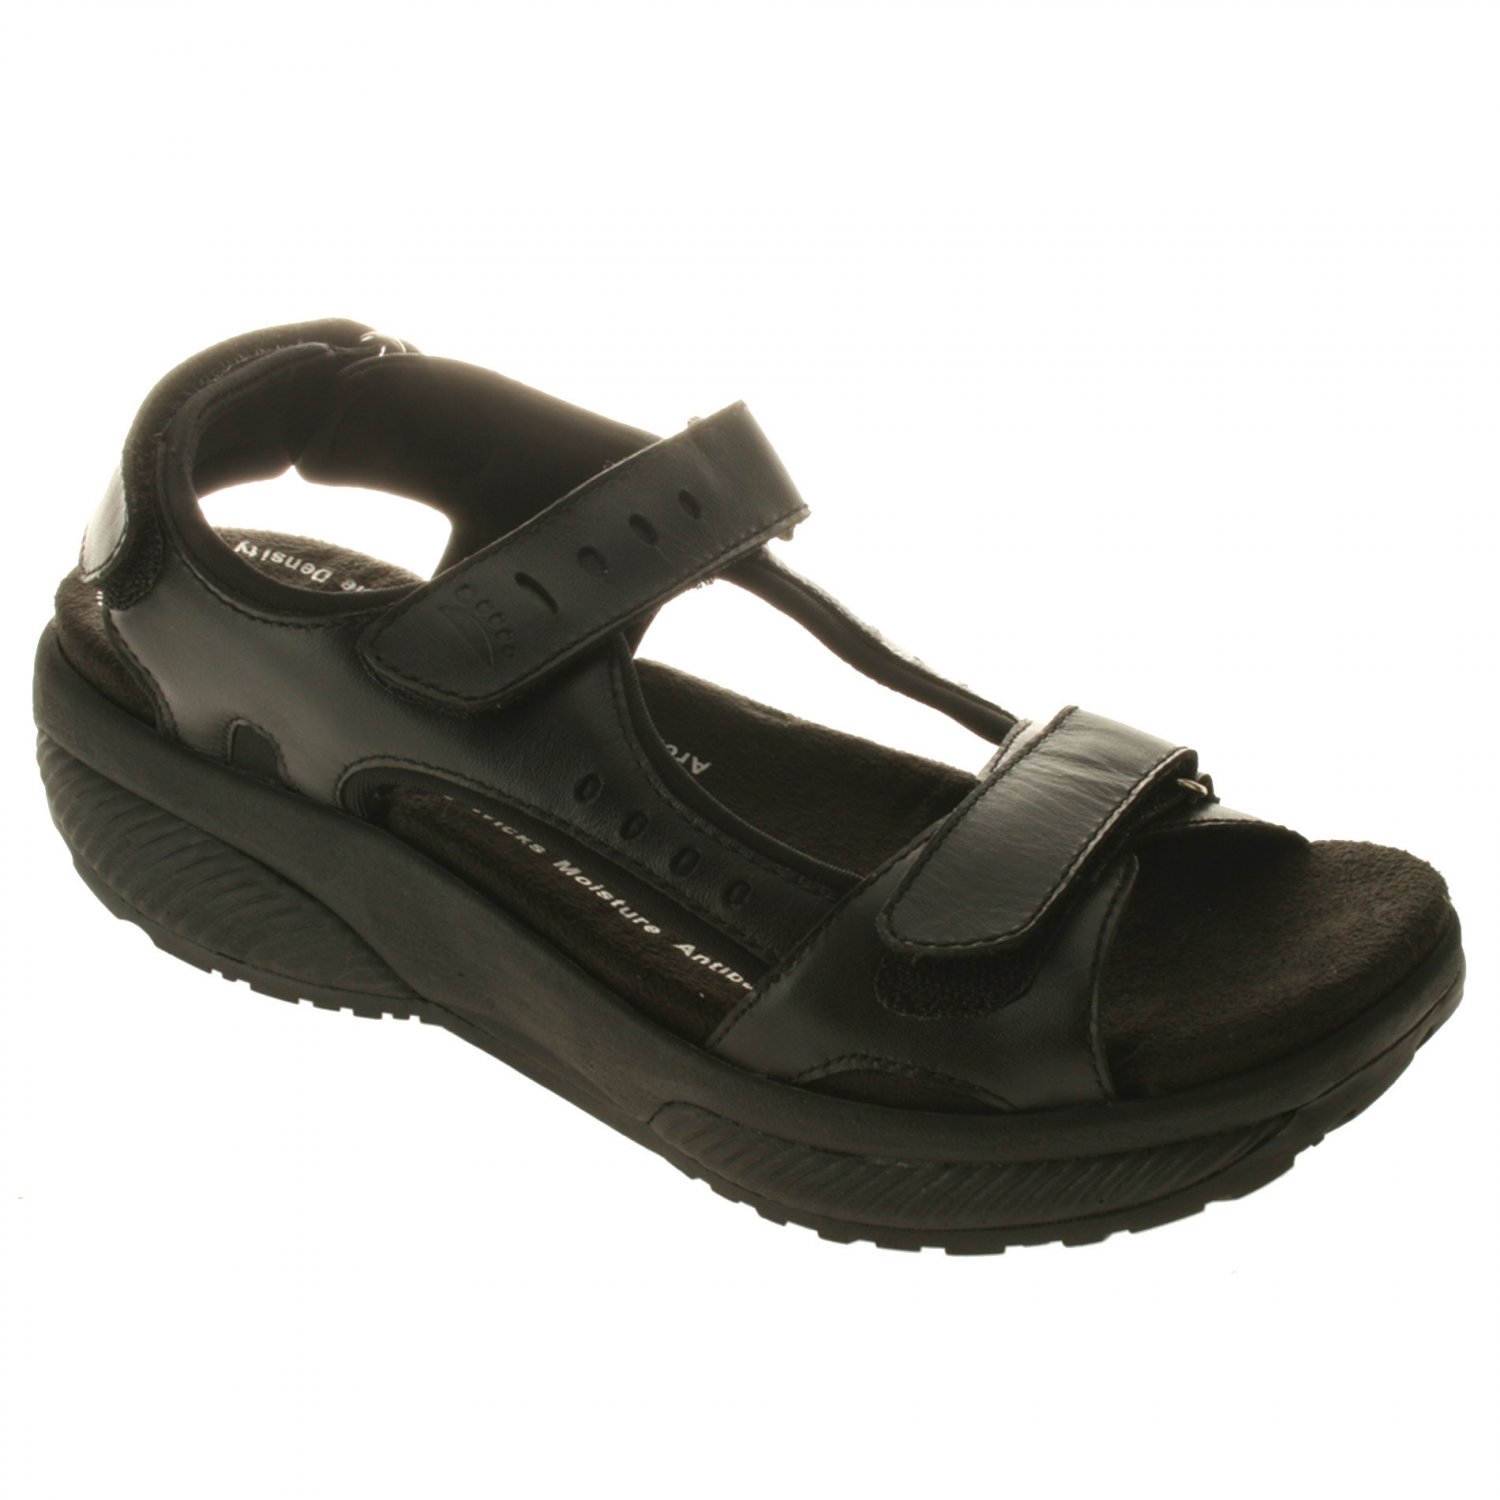 Spring Step OASIS Sandals Shoes All Sizes & Colors $99